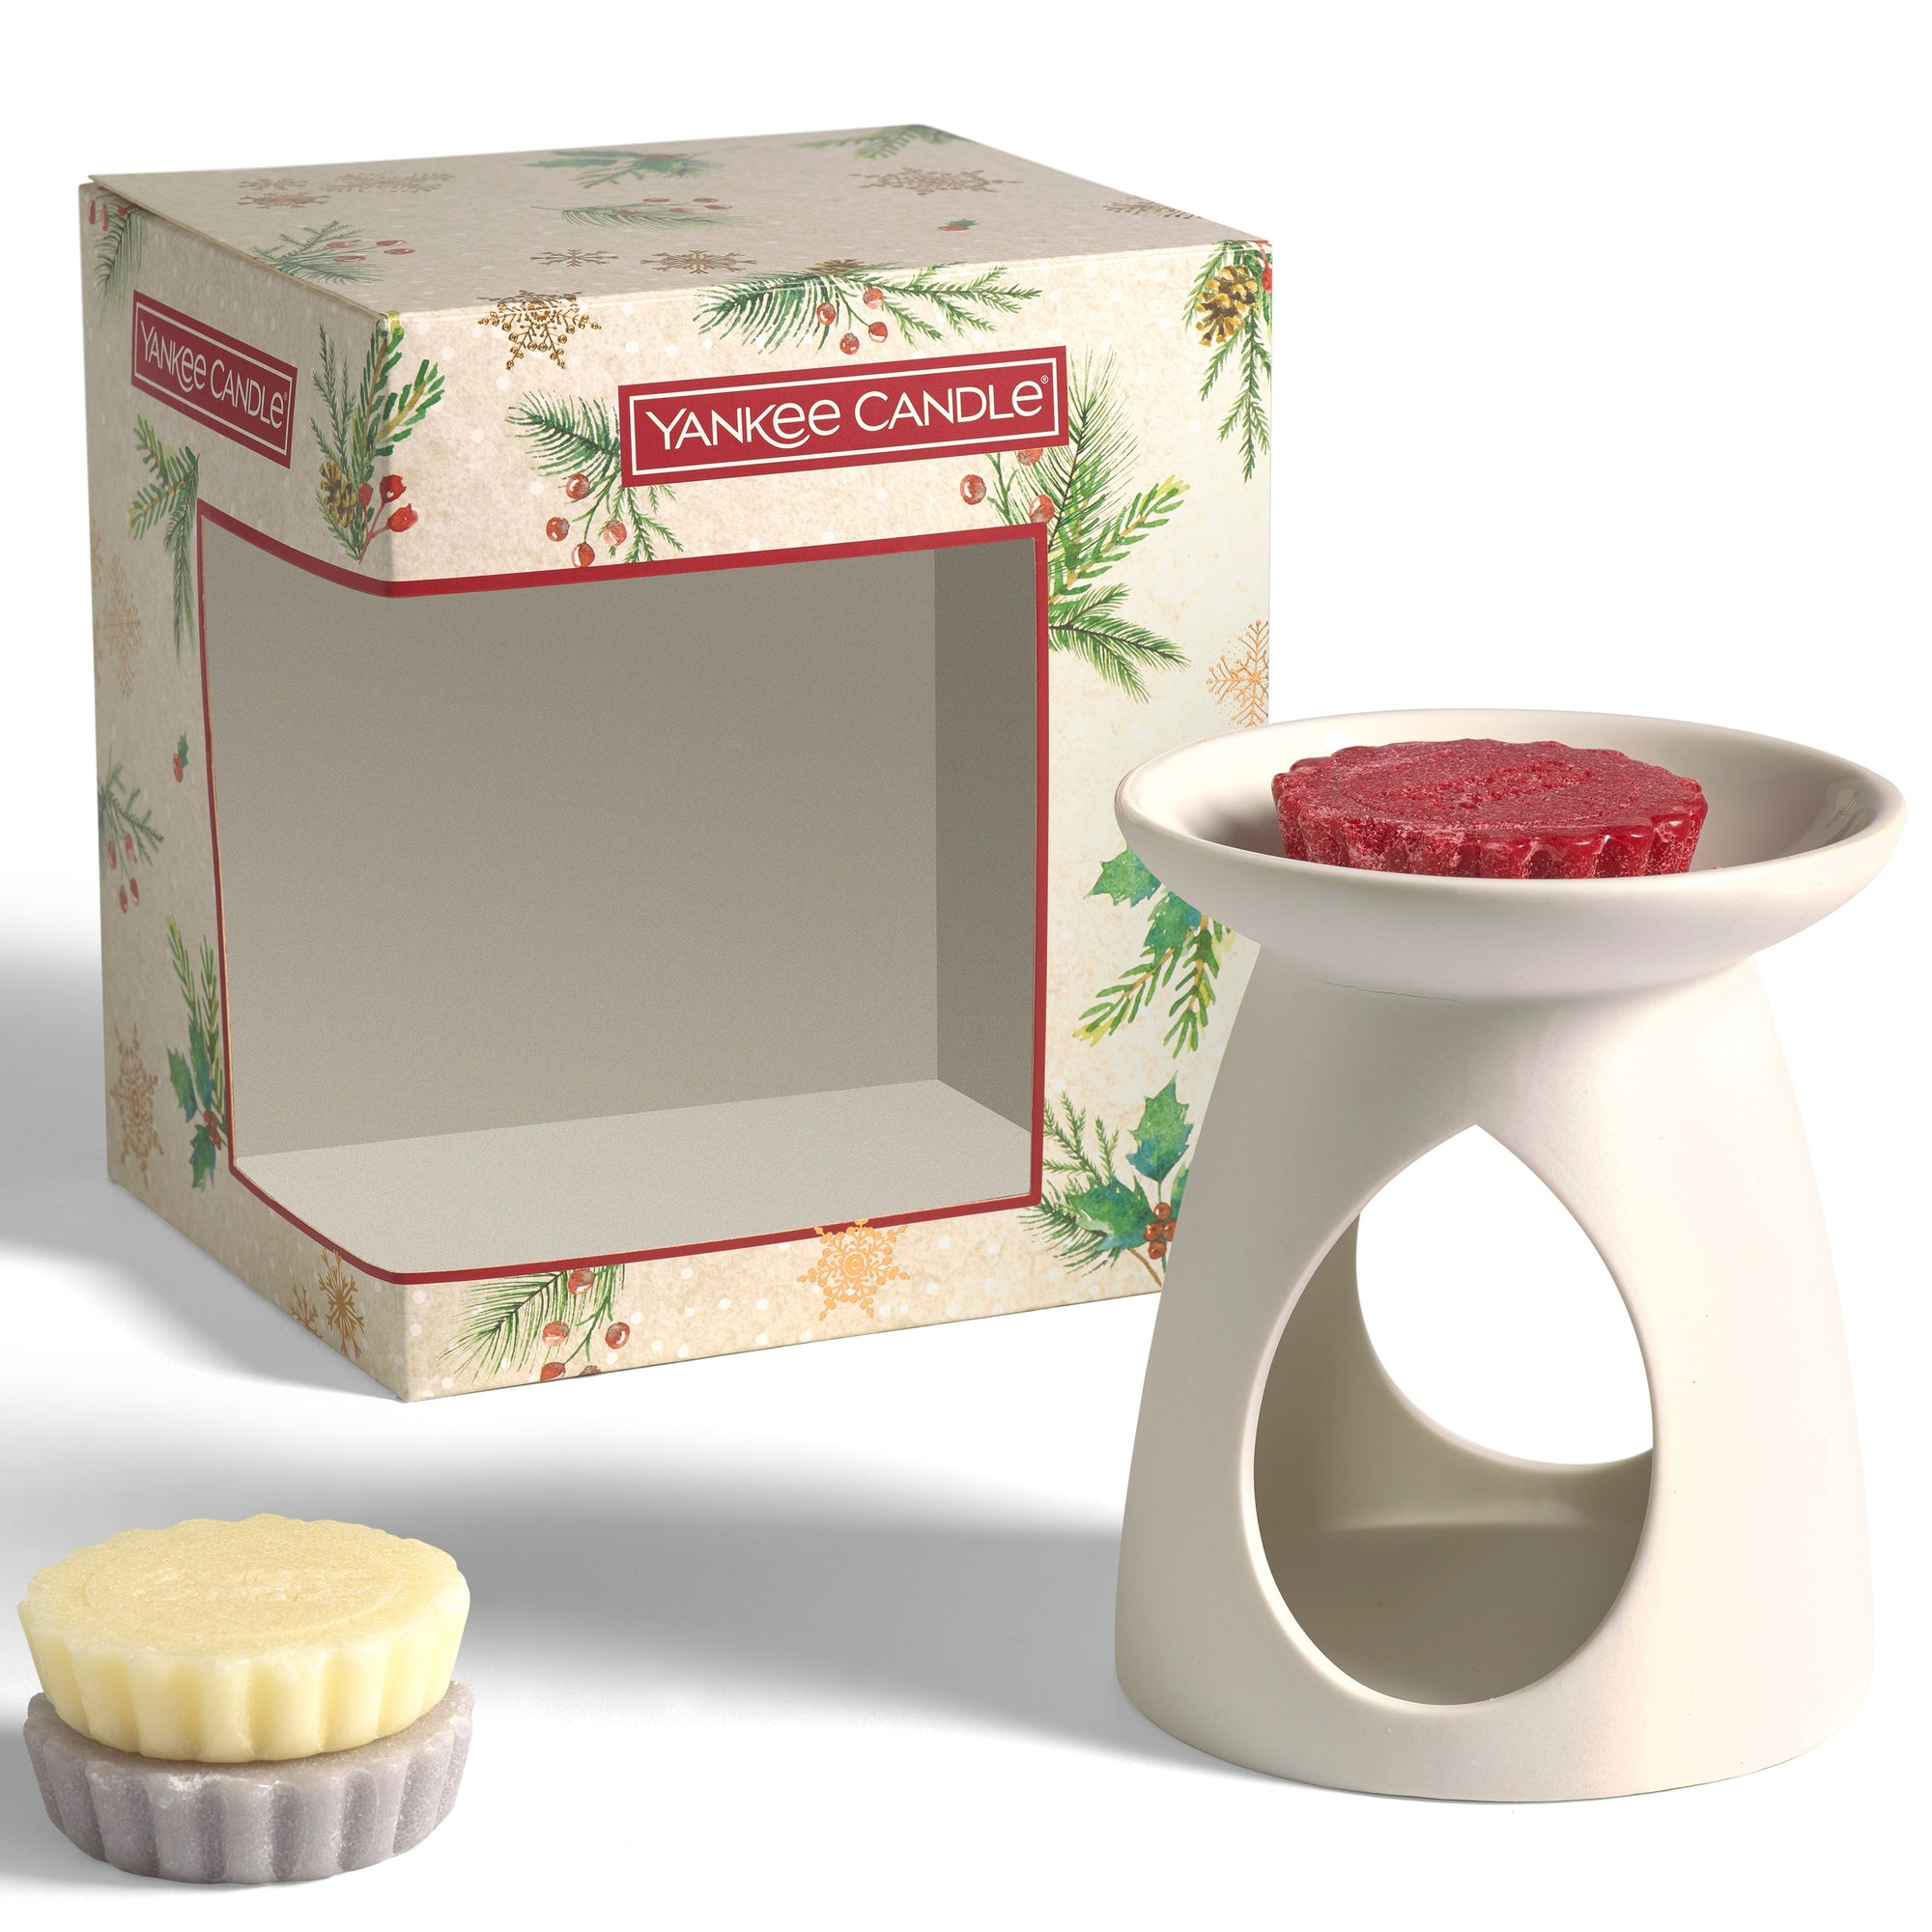 Yankee Candle - Melt Warmer Gift Set